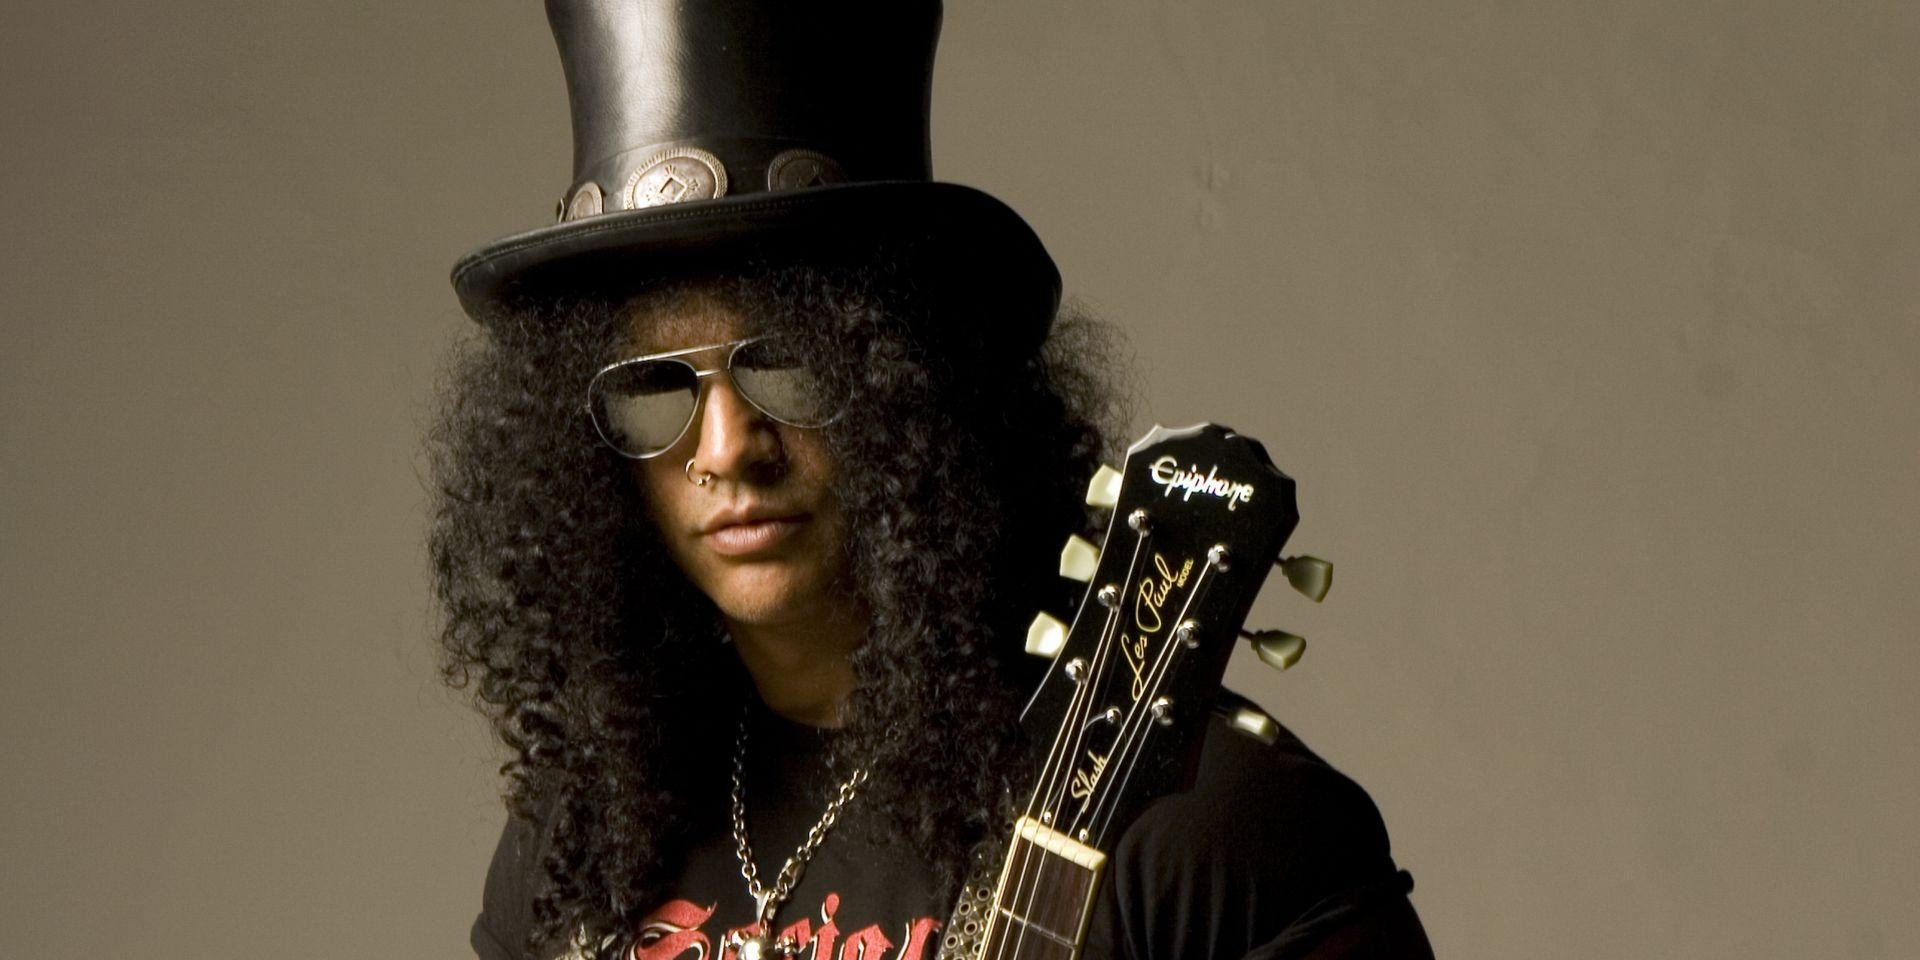 """We didn't cater to the status quo or try to be industry darlings"": An interview with Slash"